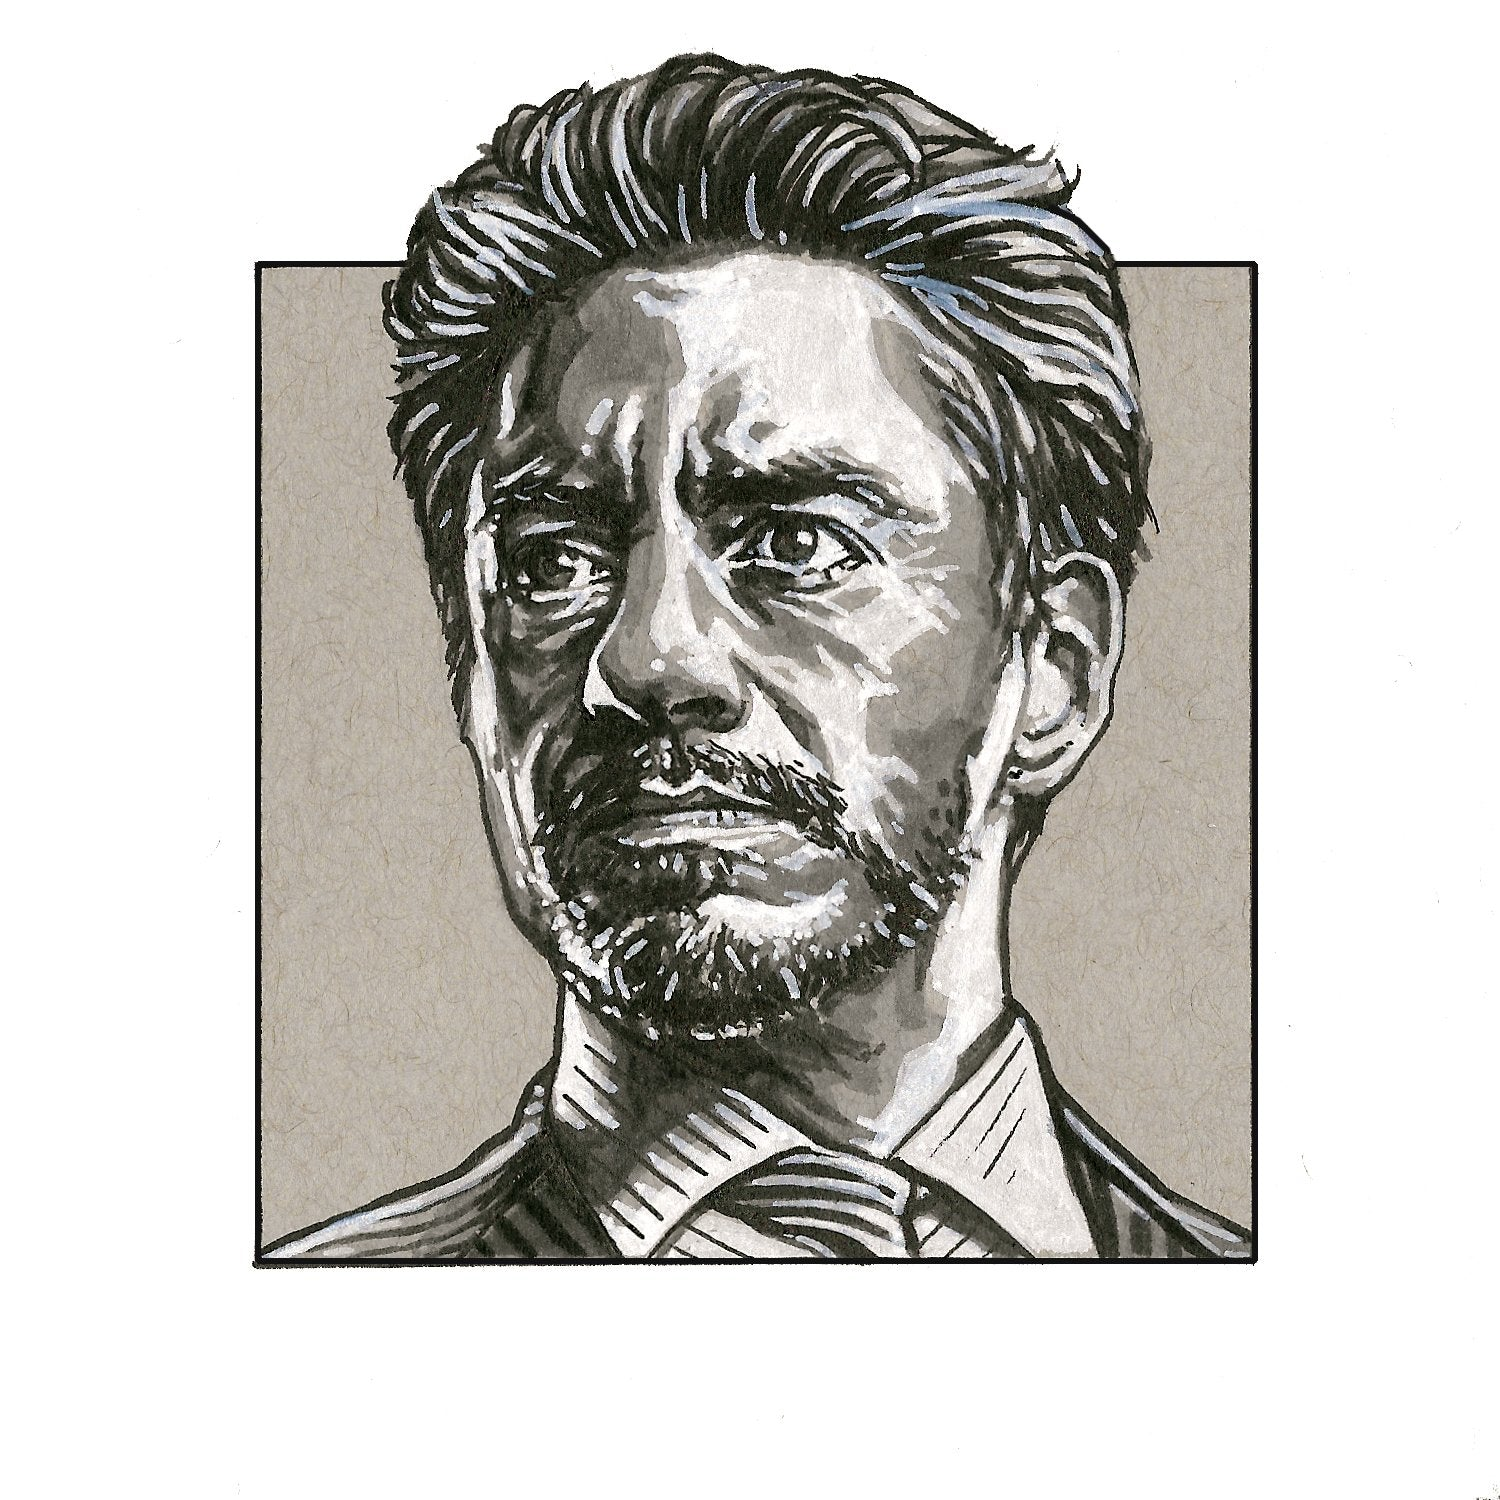 Tony Stark – Square Print by Robert Bruno